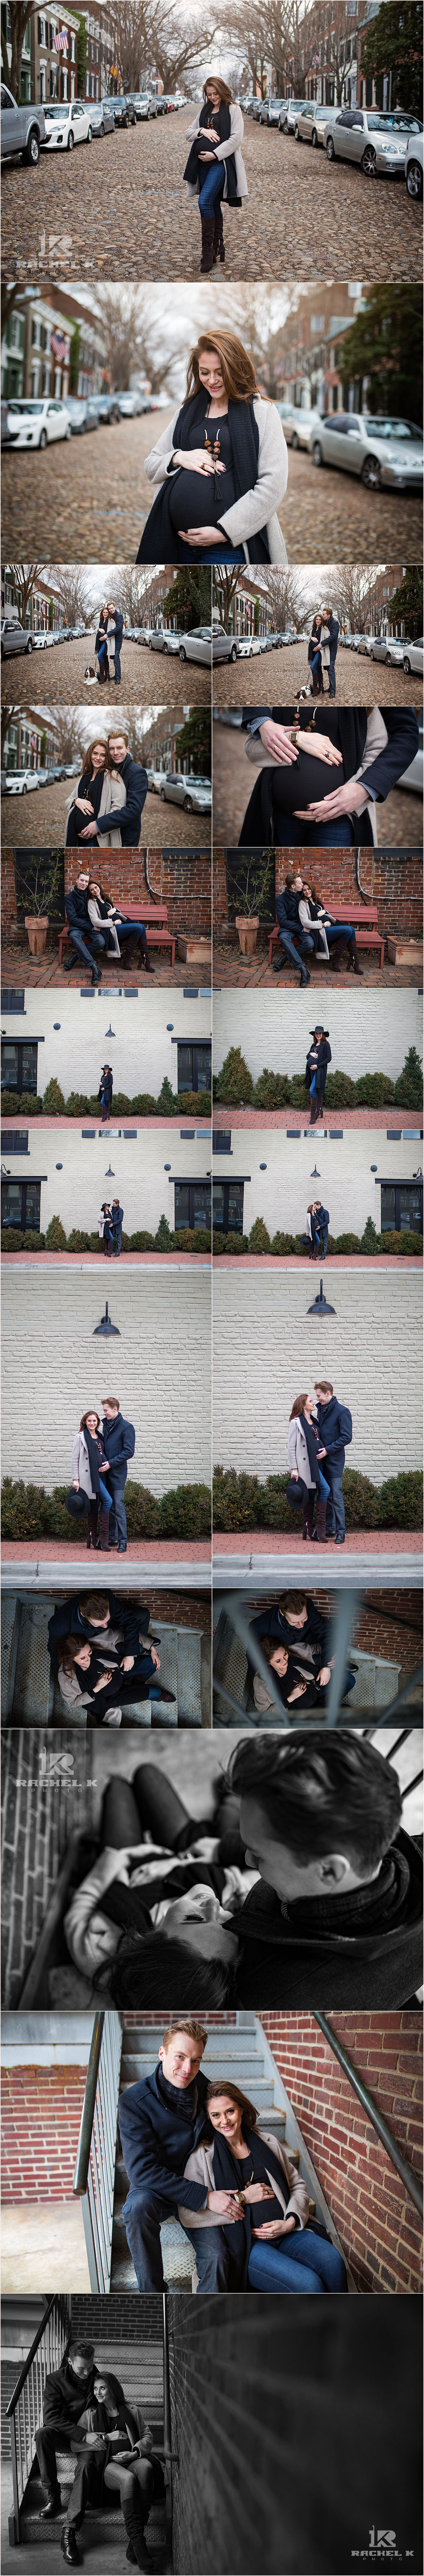 Maternity session by Rachel K Photo in Old Town Alexandria